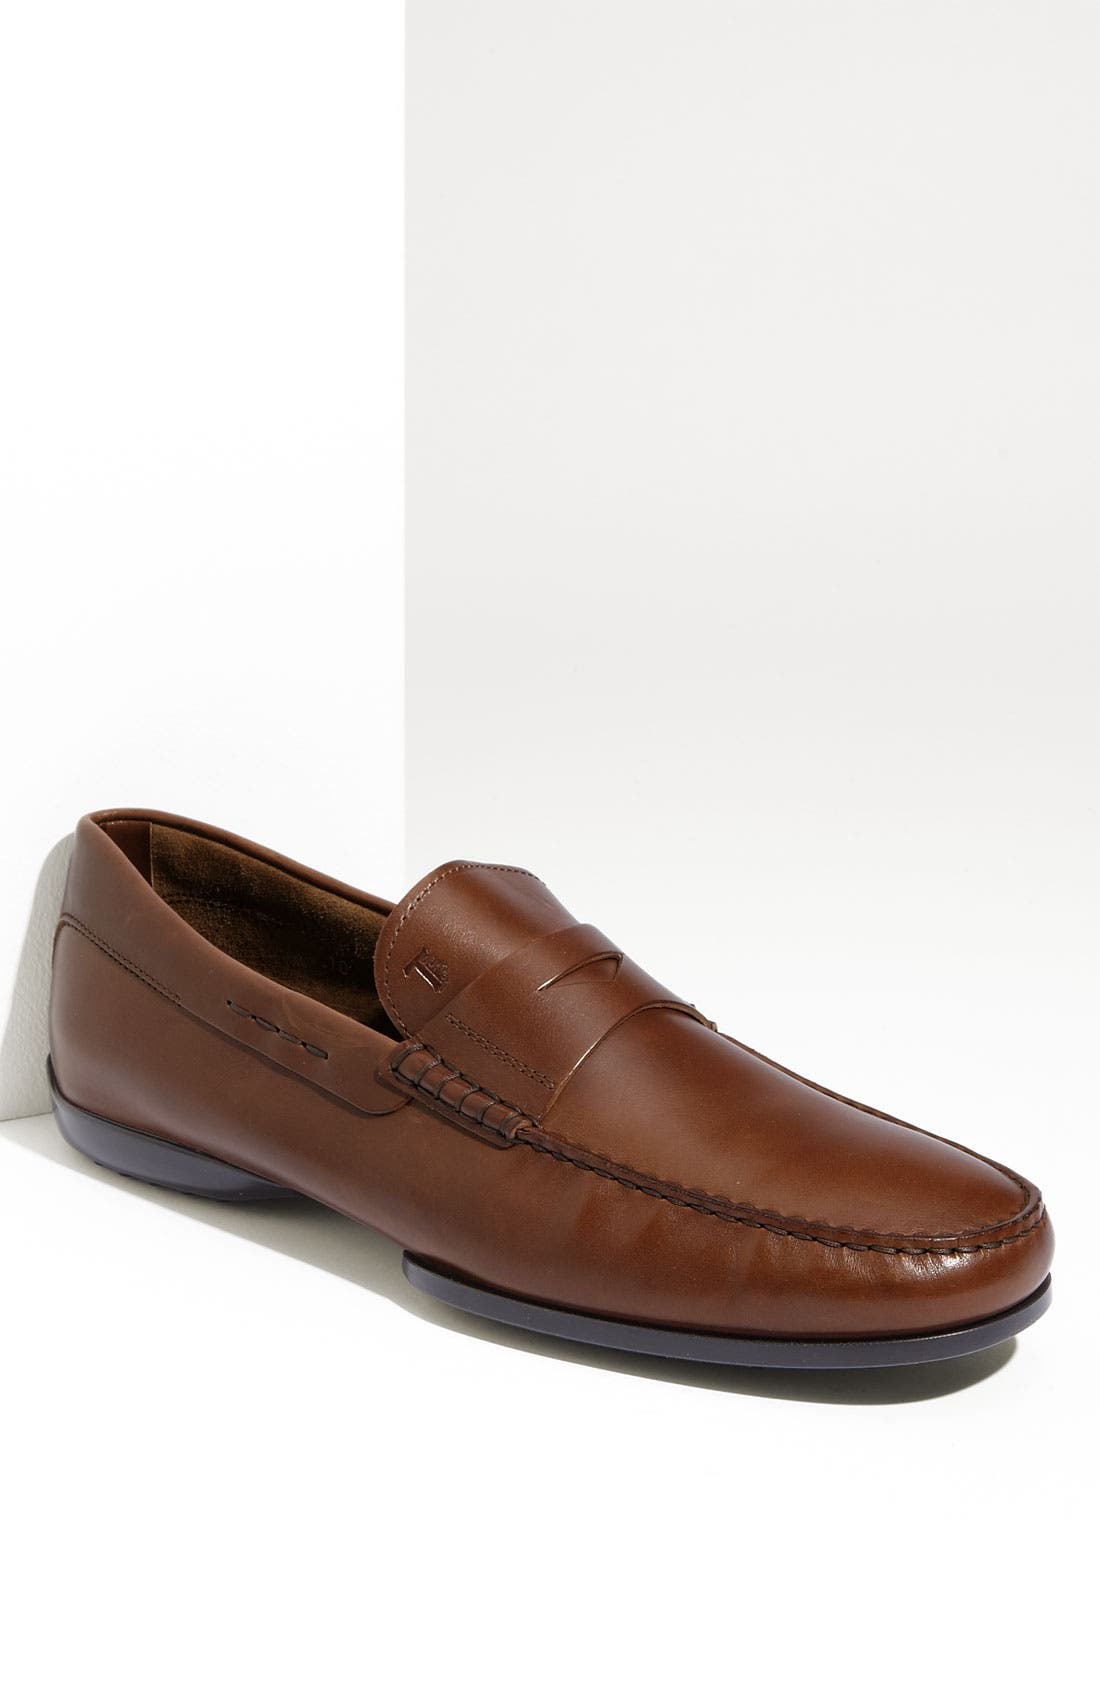 Alternate Image 1 Selected - Tod's 'Brooklyn' Penny Loafer